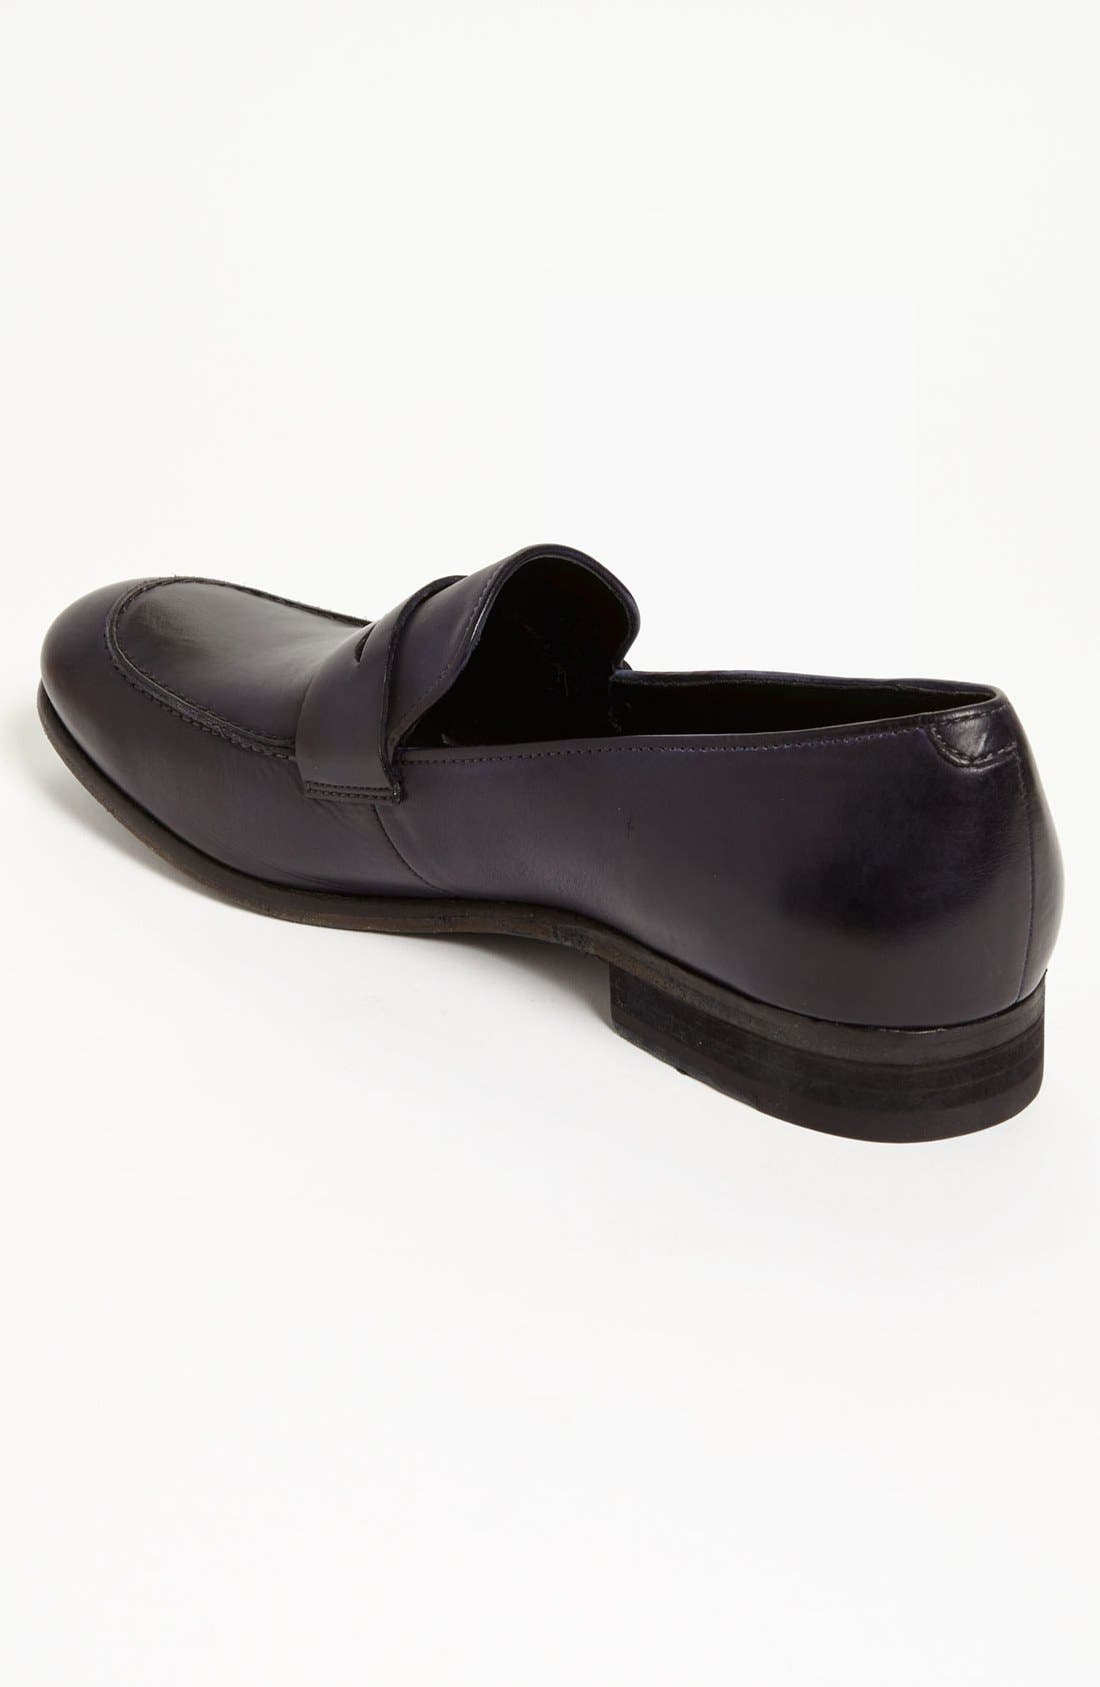 Alternate Image 2  - Donald J Pliner 'Zan' Penny Loafer